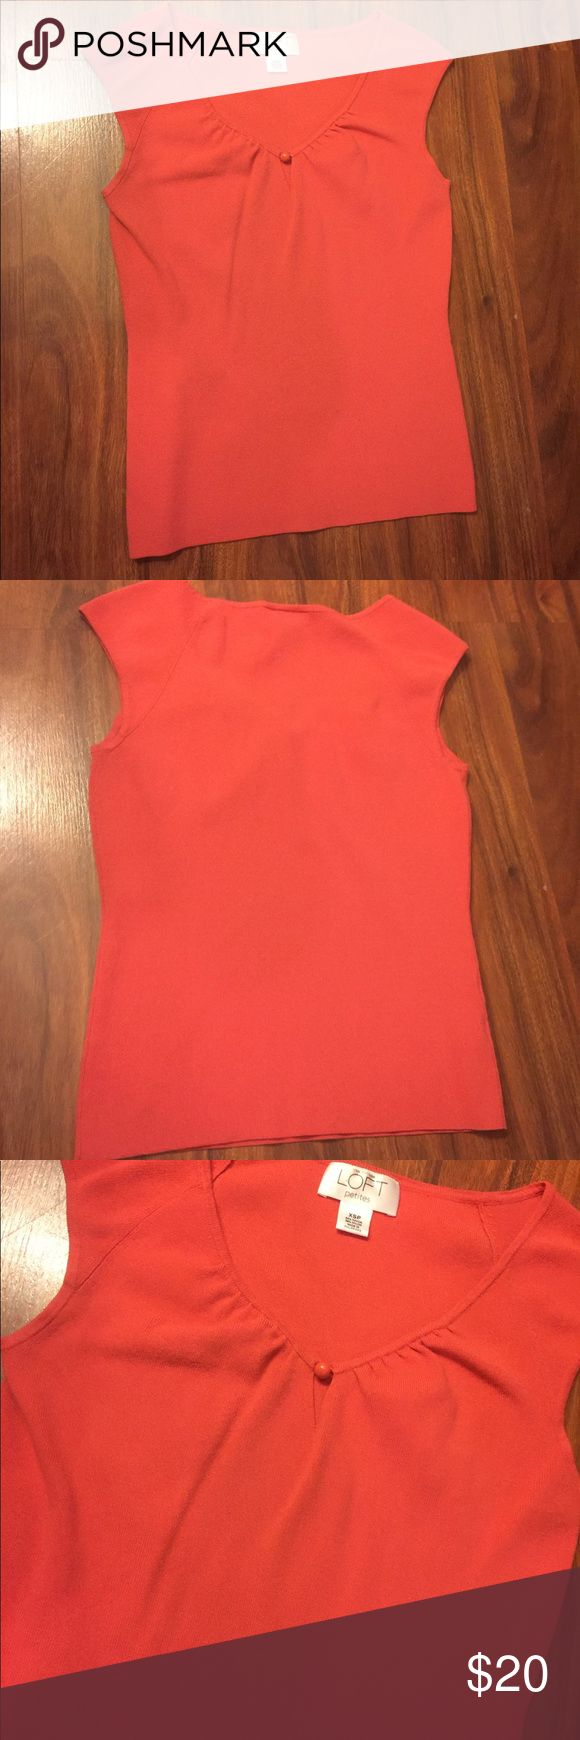 NWOT Ann Taylor Loft petites Knit Top New never worn gorgeous Ann Taylor Summer Coral/ Orange feminine v neck Knit Top. Perfect summer color if you going Boho . Versatile and can be worn with dress pants for work, maxi skirts , mini skirts , jeans and shorts! Must have classic . Rayon, Nylon. Imported from Philippines LOFT Tops